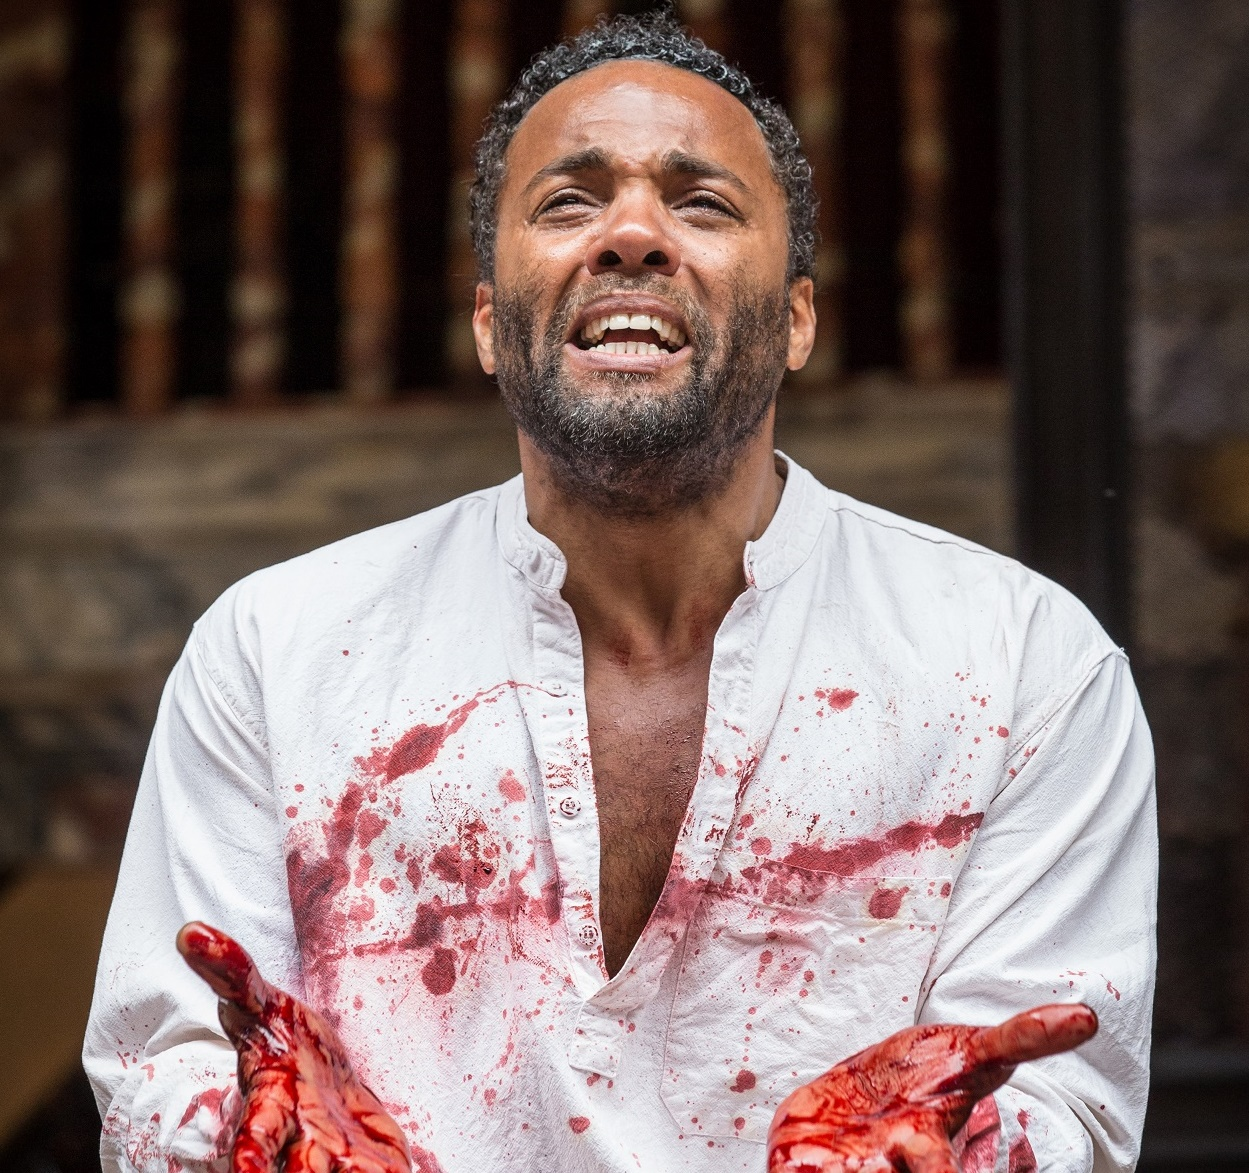 macbeth review Chicago shakespeare theater (cst) presents macbeth, adapted and directed by teller (of penn & teller) and aaron posner—the celebrated creative duo.